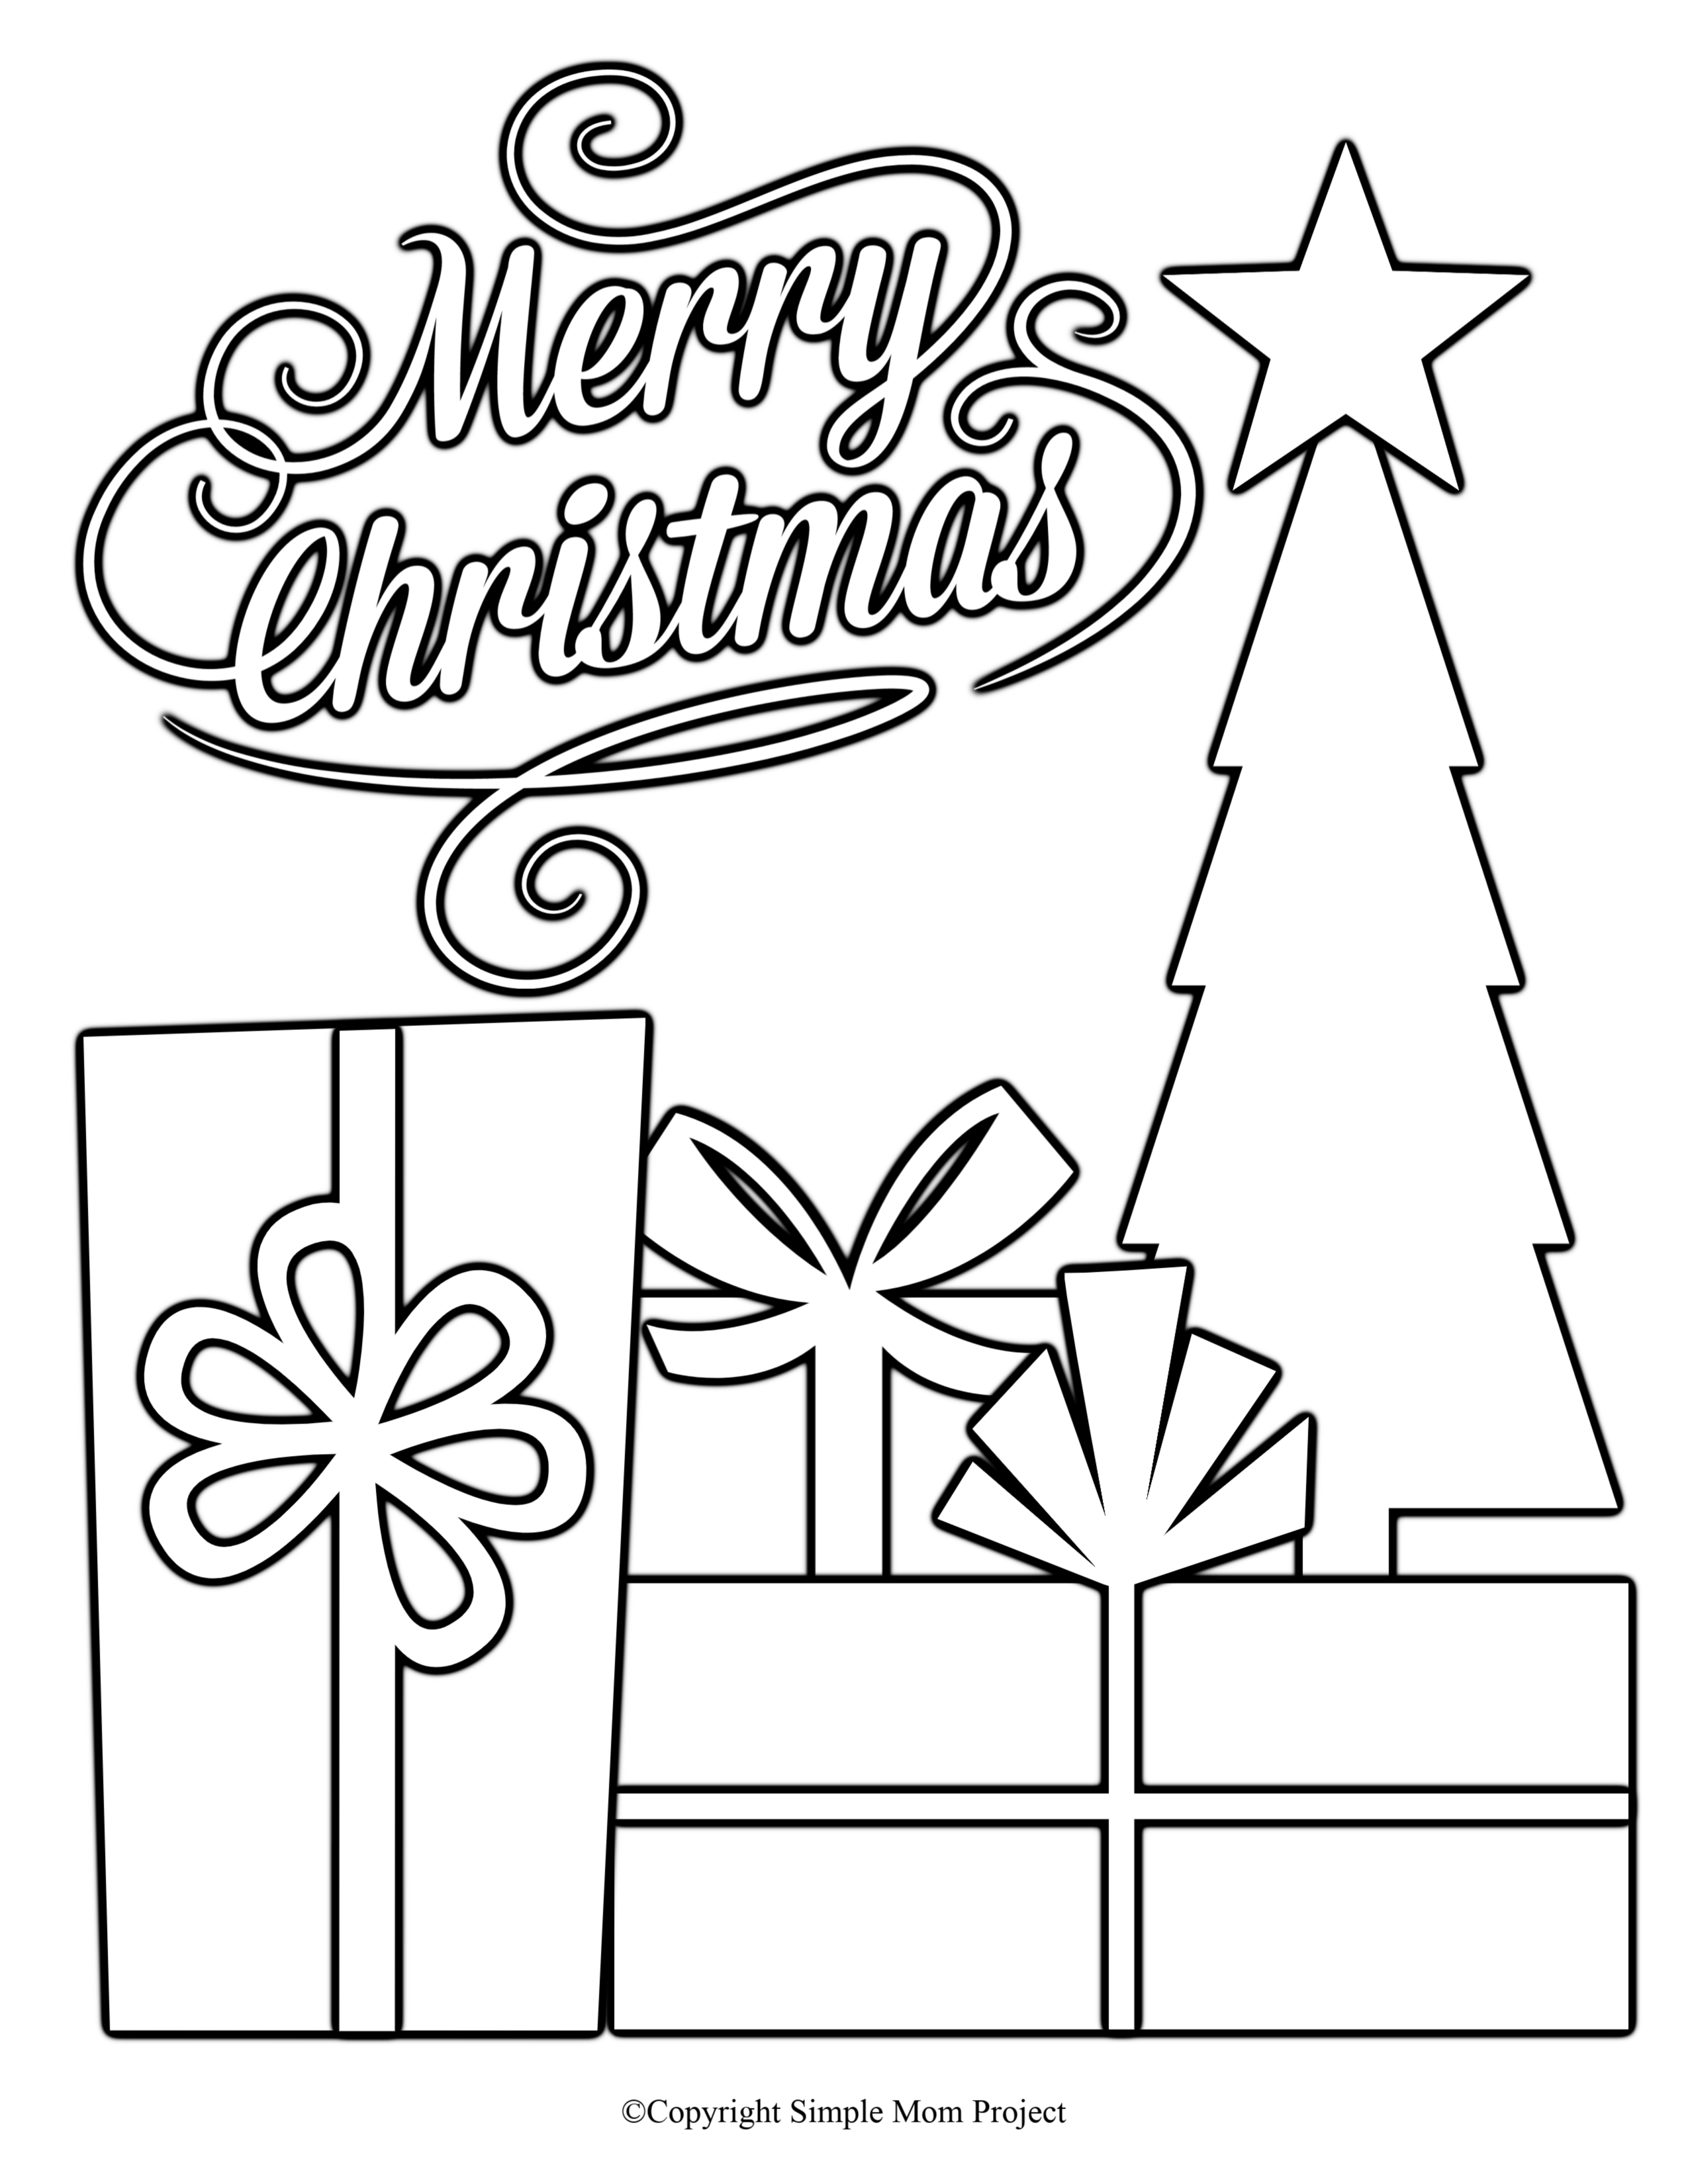 Click Now To Print These Cute Free Christmas Coloring Pages And Sh Christmas Coloring Sheets Christmas Coloring Sheets For Kids Merry Christmas Coloring Pages